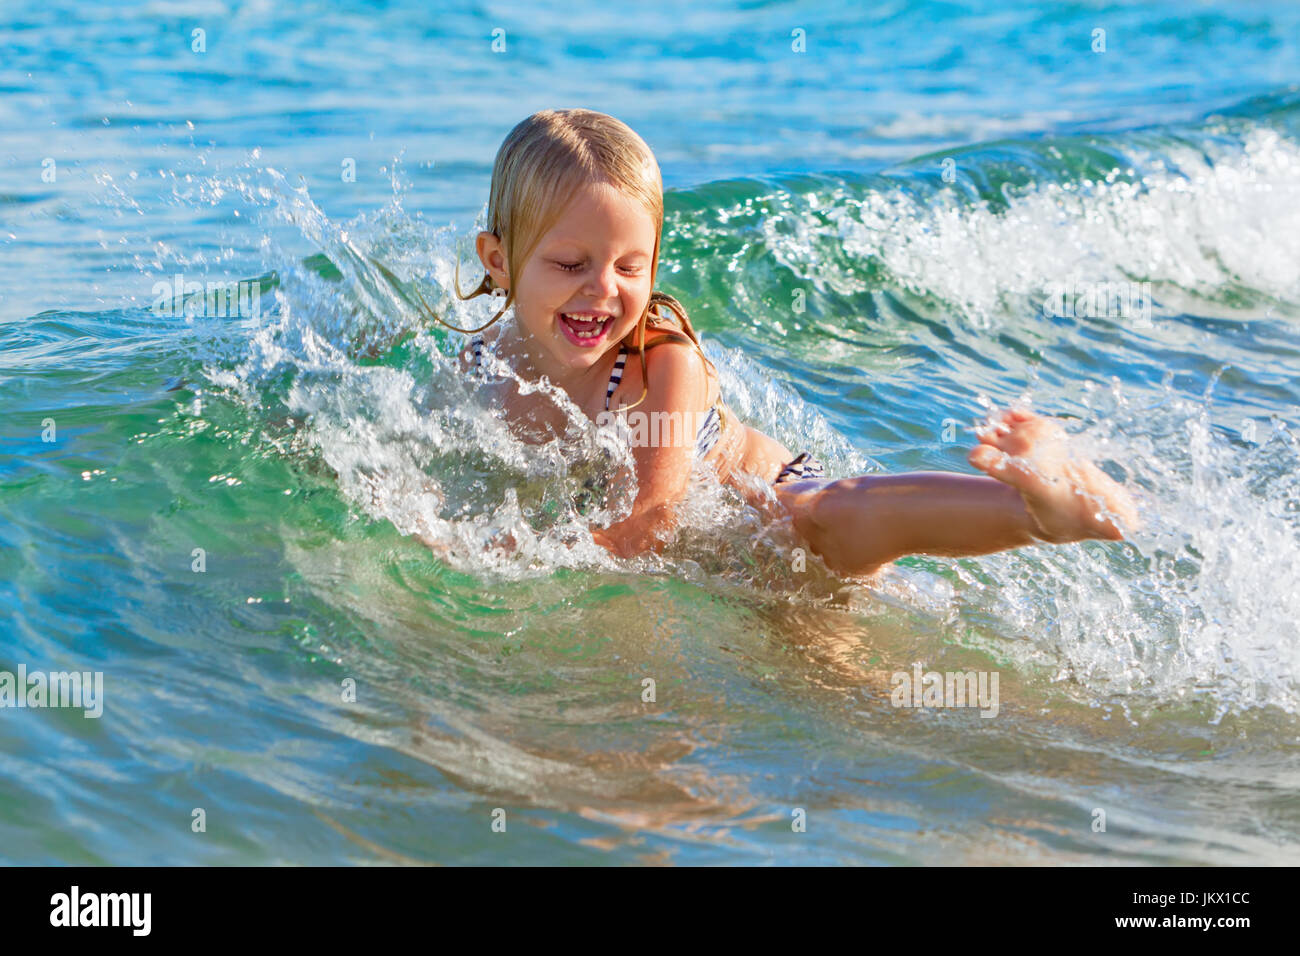 Happy family lifestyle. Baby girl splashing and jumping with fun in breaking waves. Summer travel, water sport outdoor Stock Photo